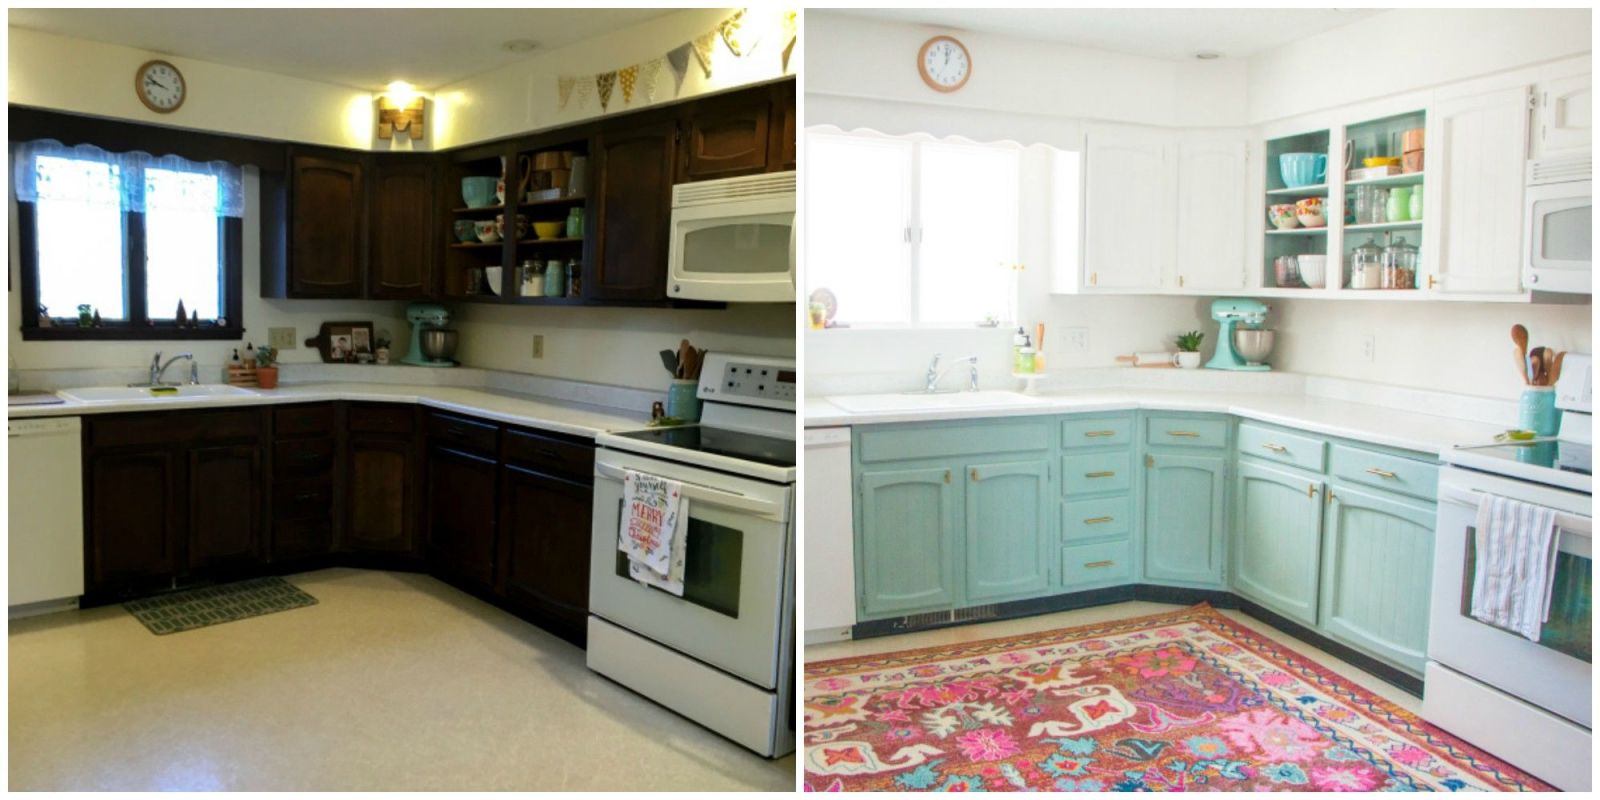 Kitchen Remodel Before And After Renovating An Old House  Before And After Pictures Of Home